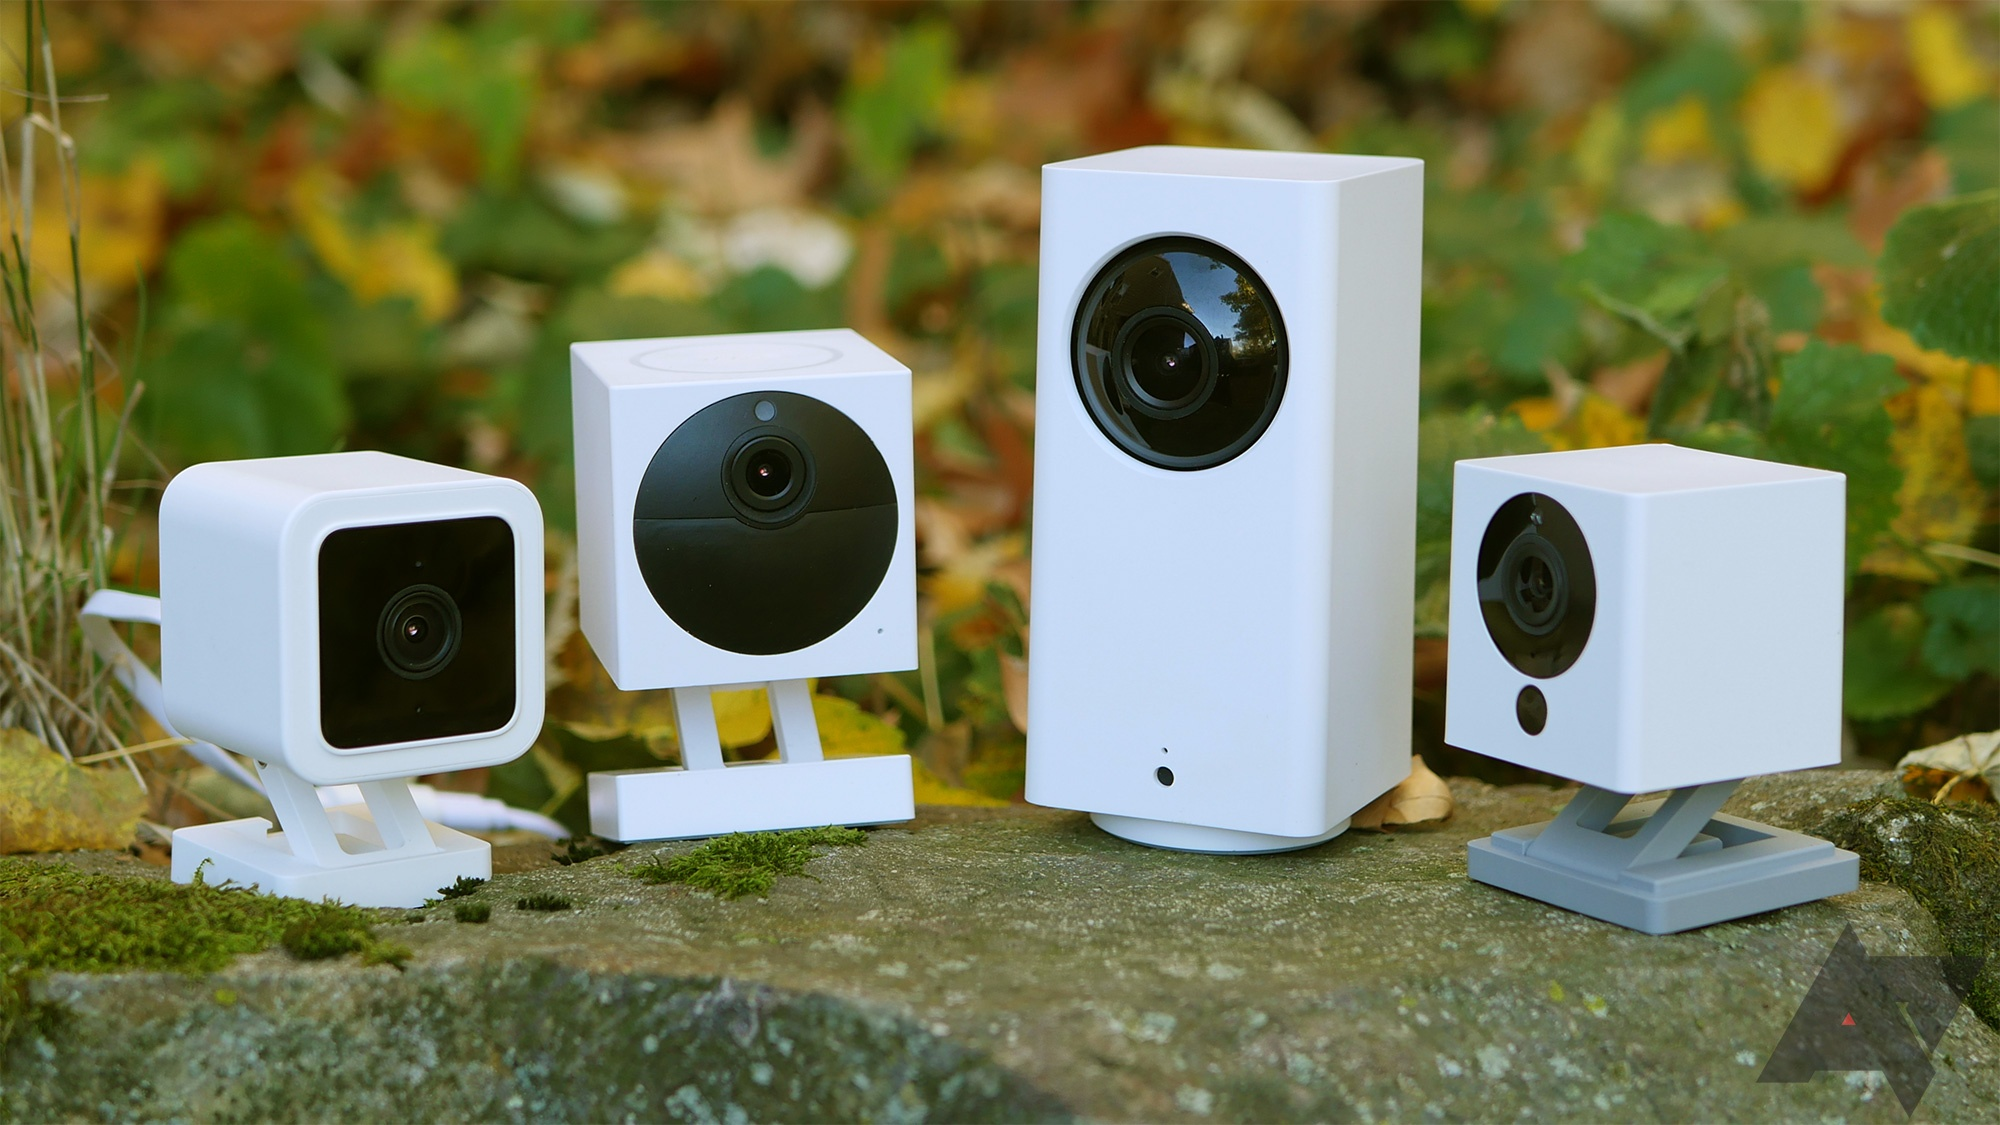 Wyze cam v3: what's new about it?